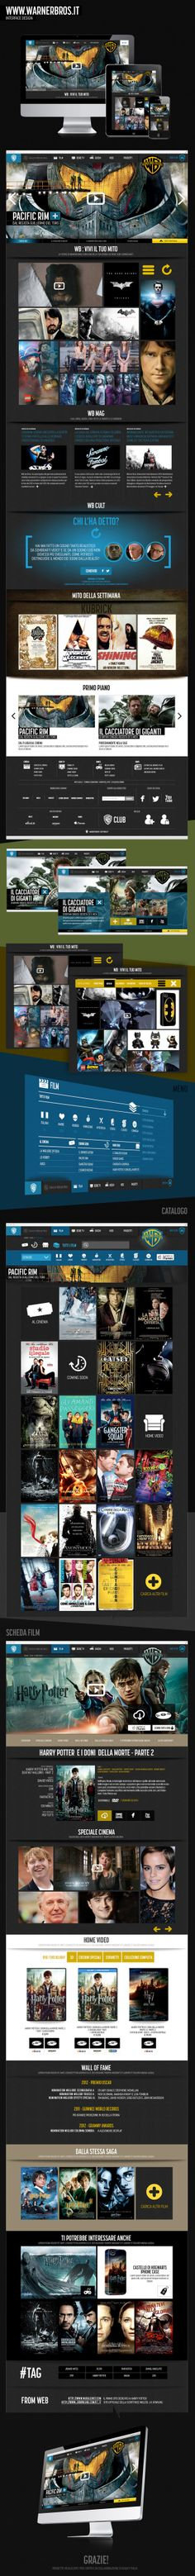 WARNER BROS ITALIA by Manuela Demontis, via Behance